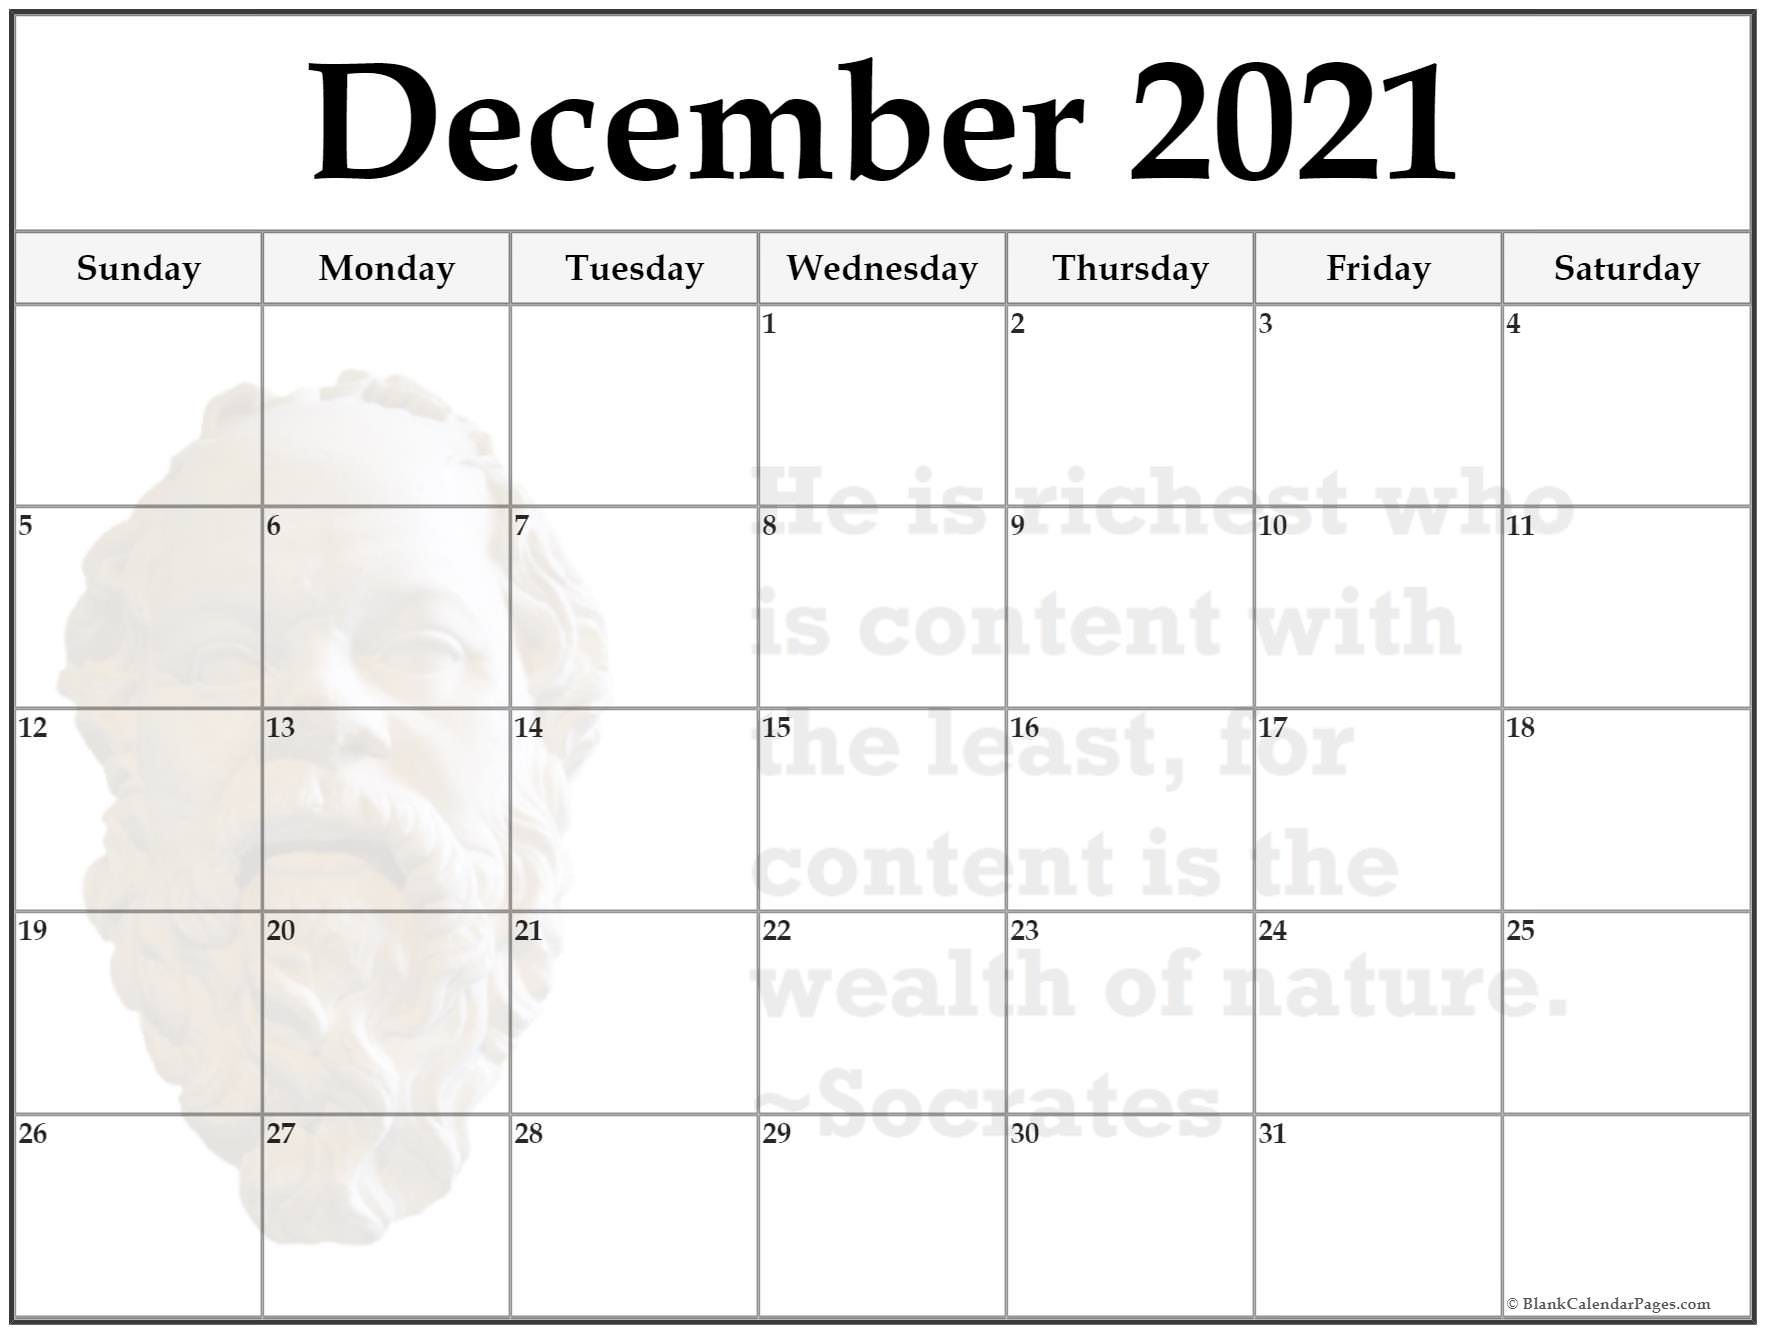 December 2021 monthly quote calendar template. He is richest who is content with the least, for content is the wealth of nature. ~Socrates